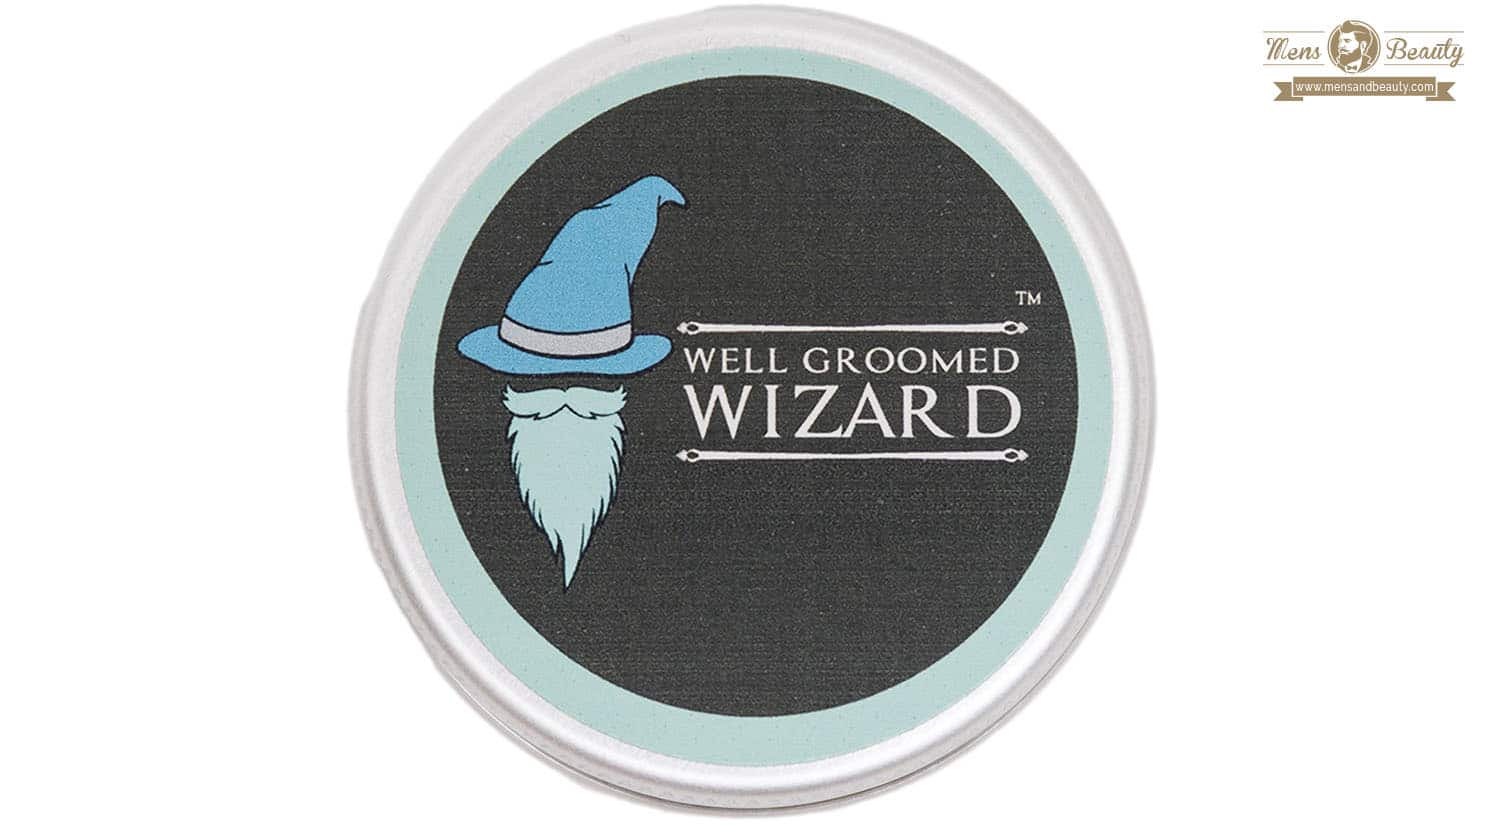 mejores productos barba bigote hombre well groomed wizard